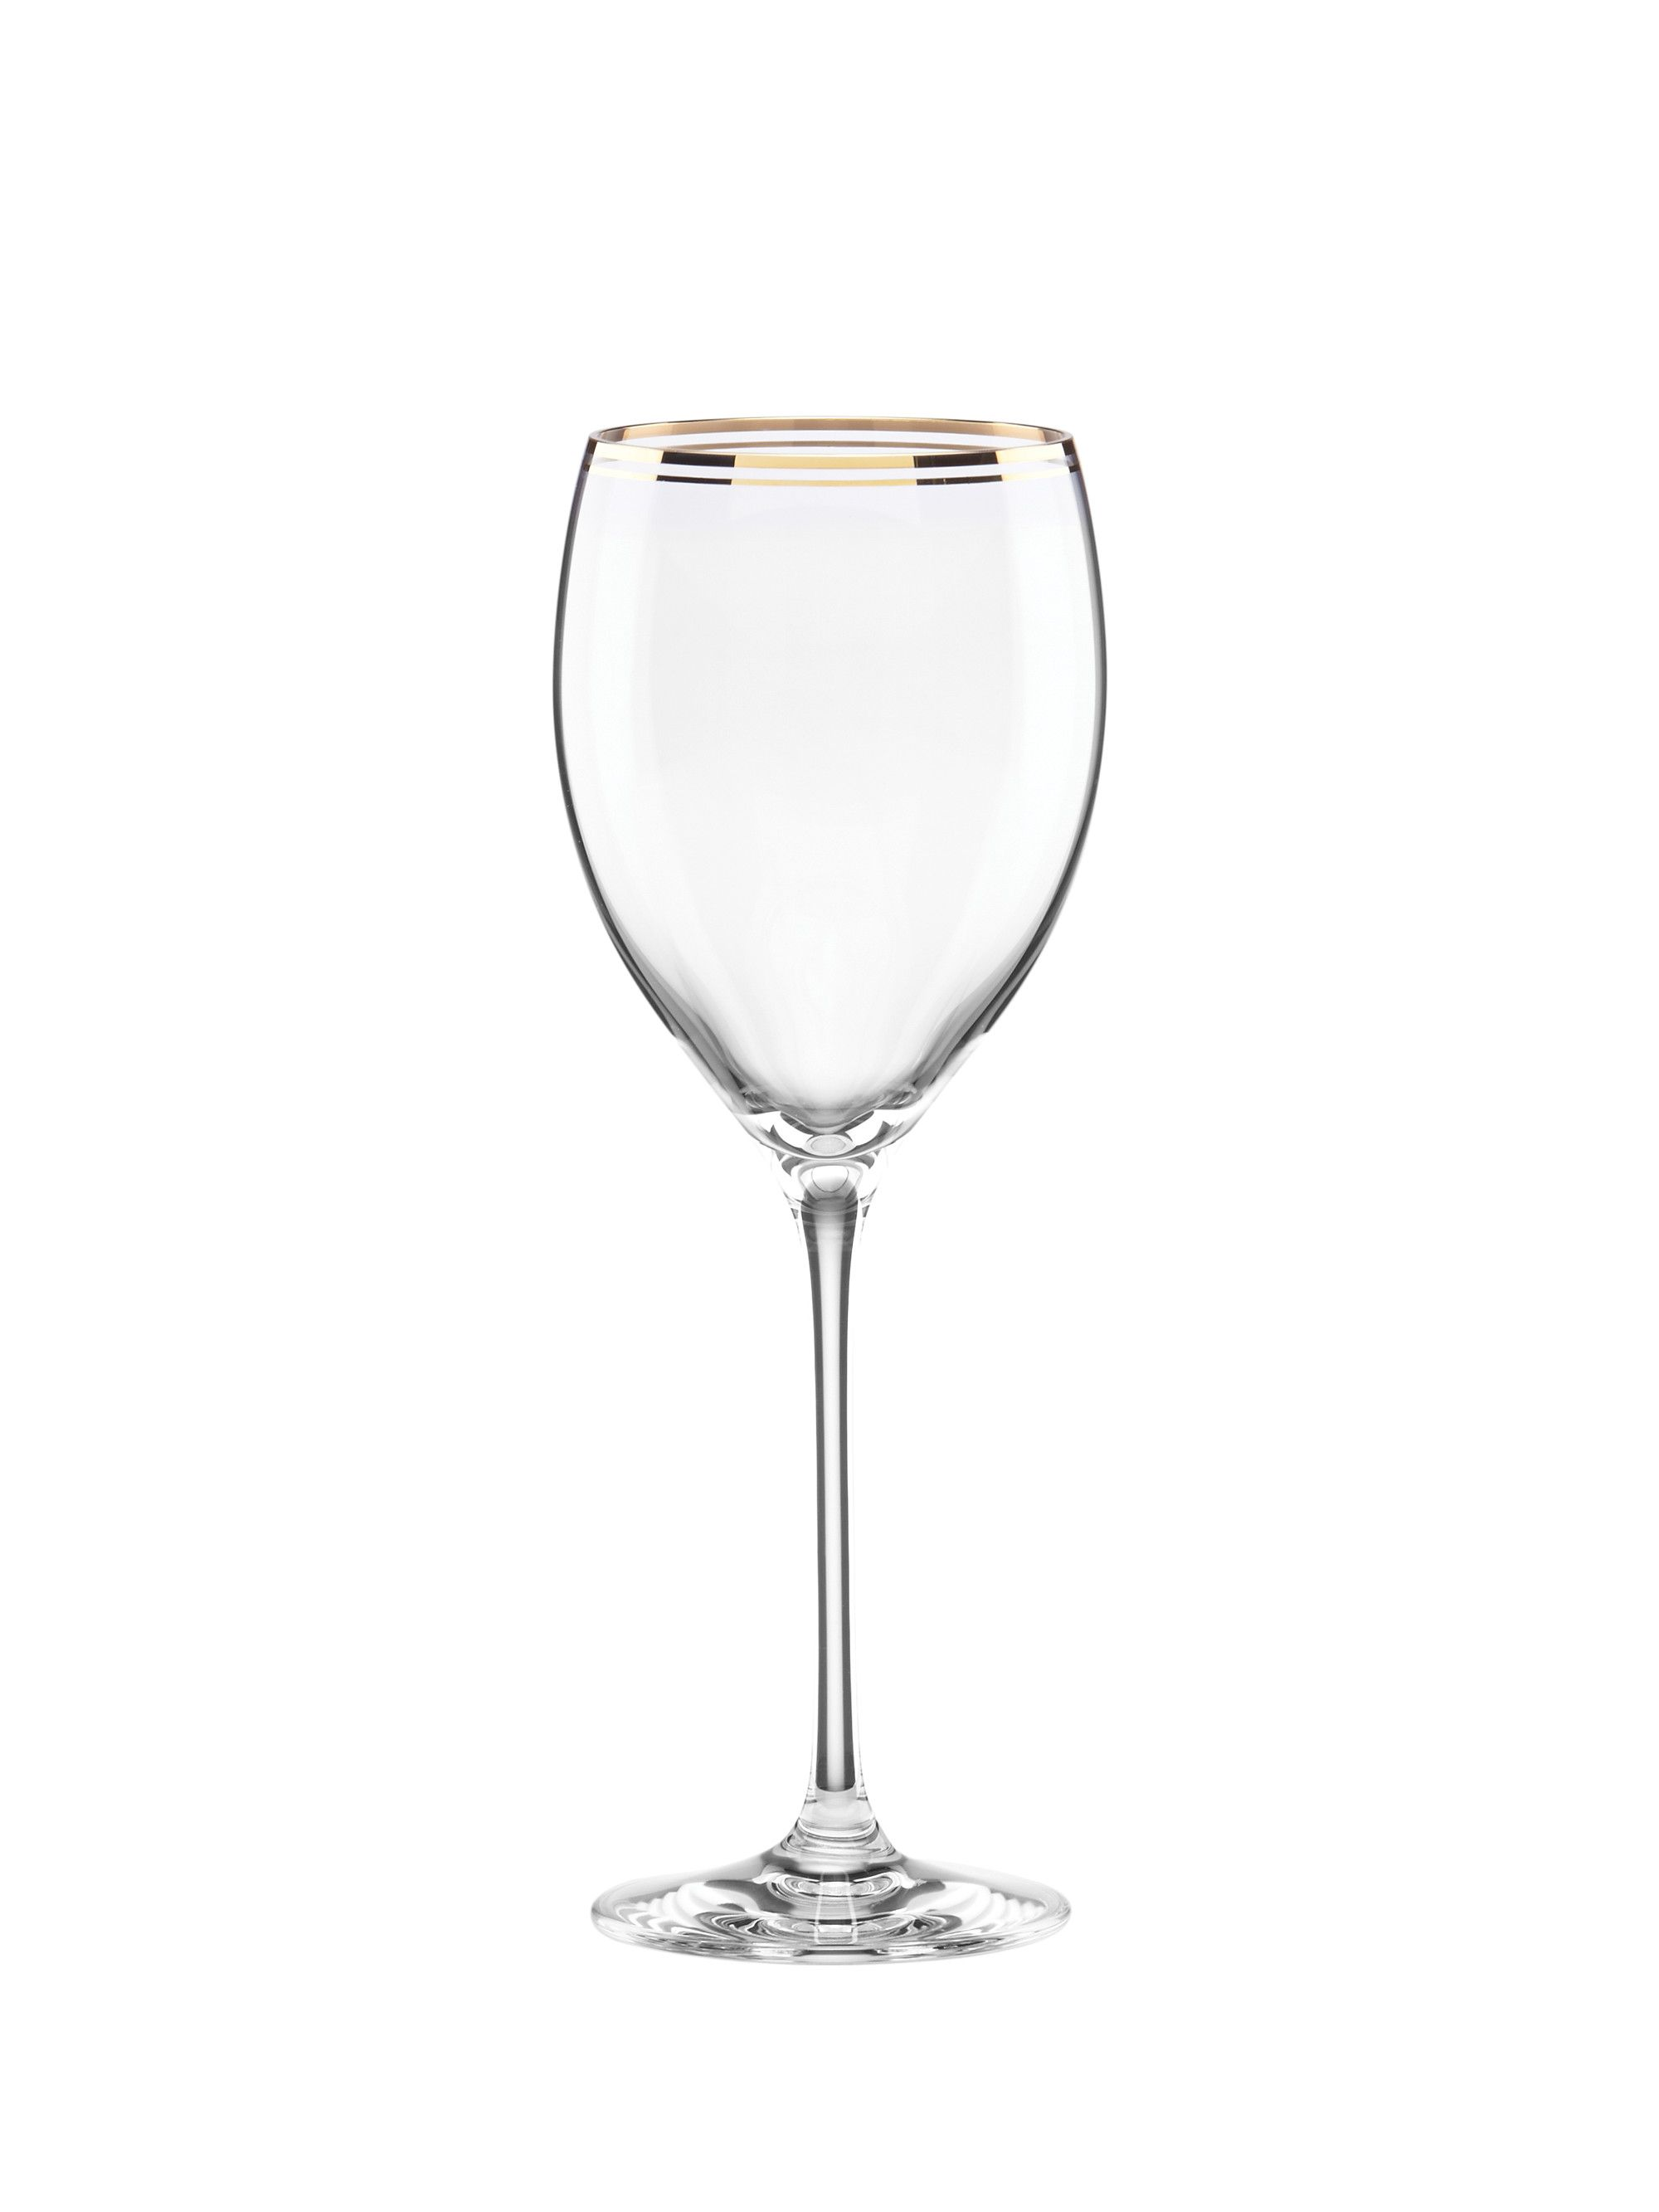 Goblet Style Wine Glasses Instantly Dress Up Any Table With The Sparkling Orleans